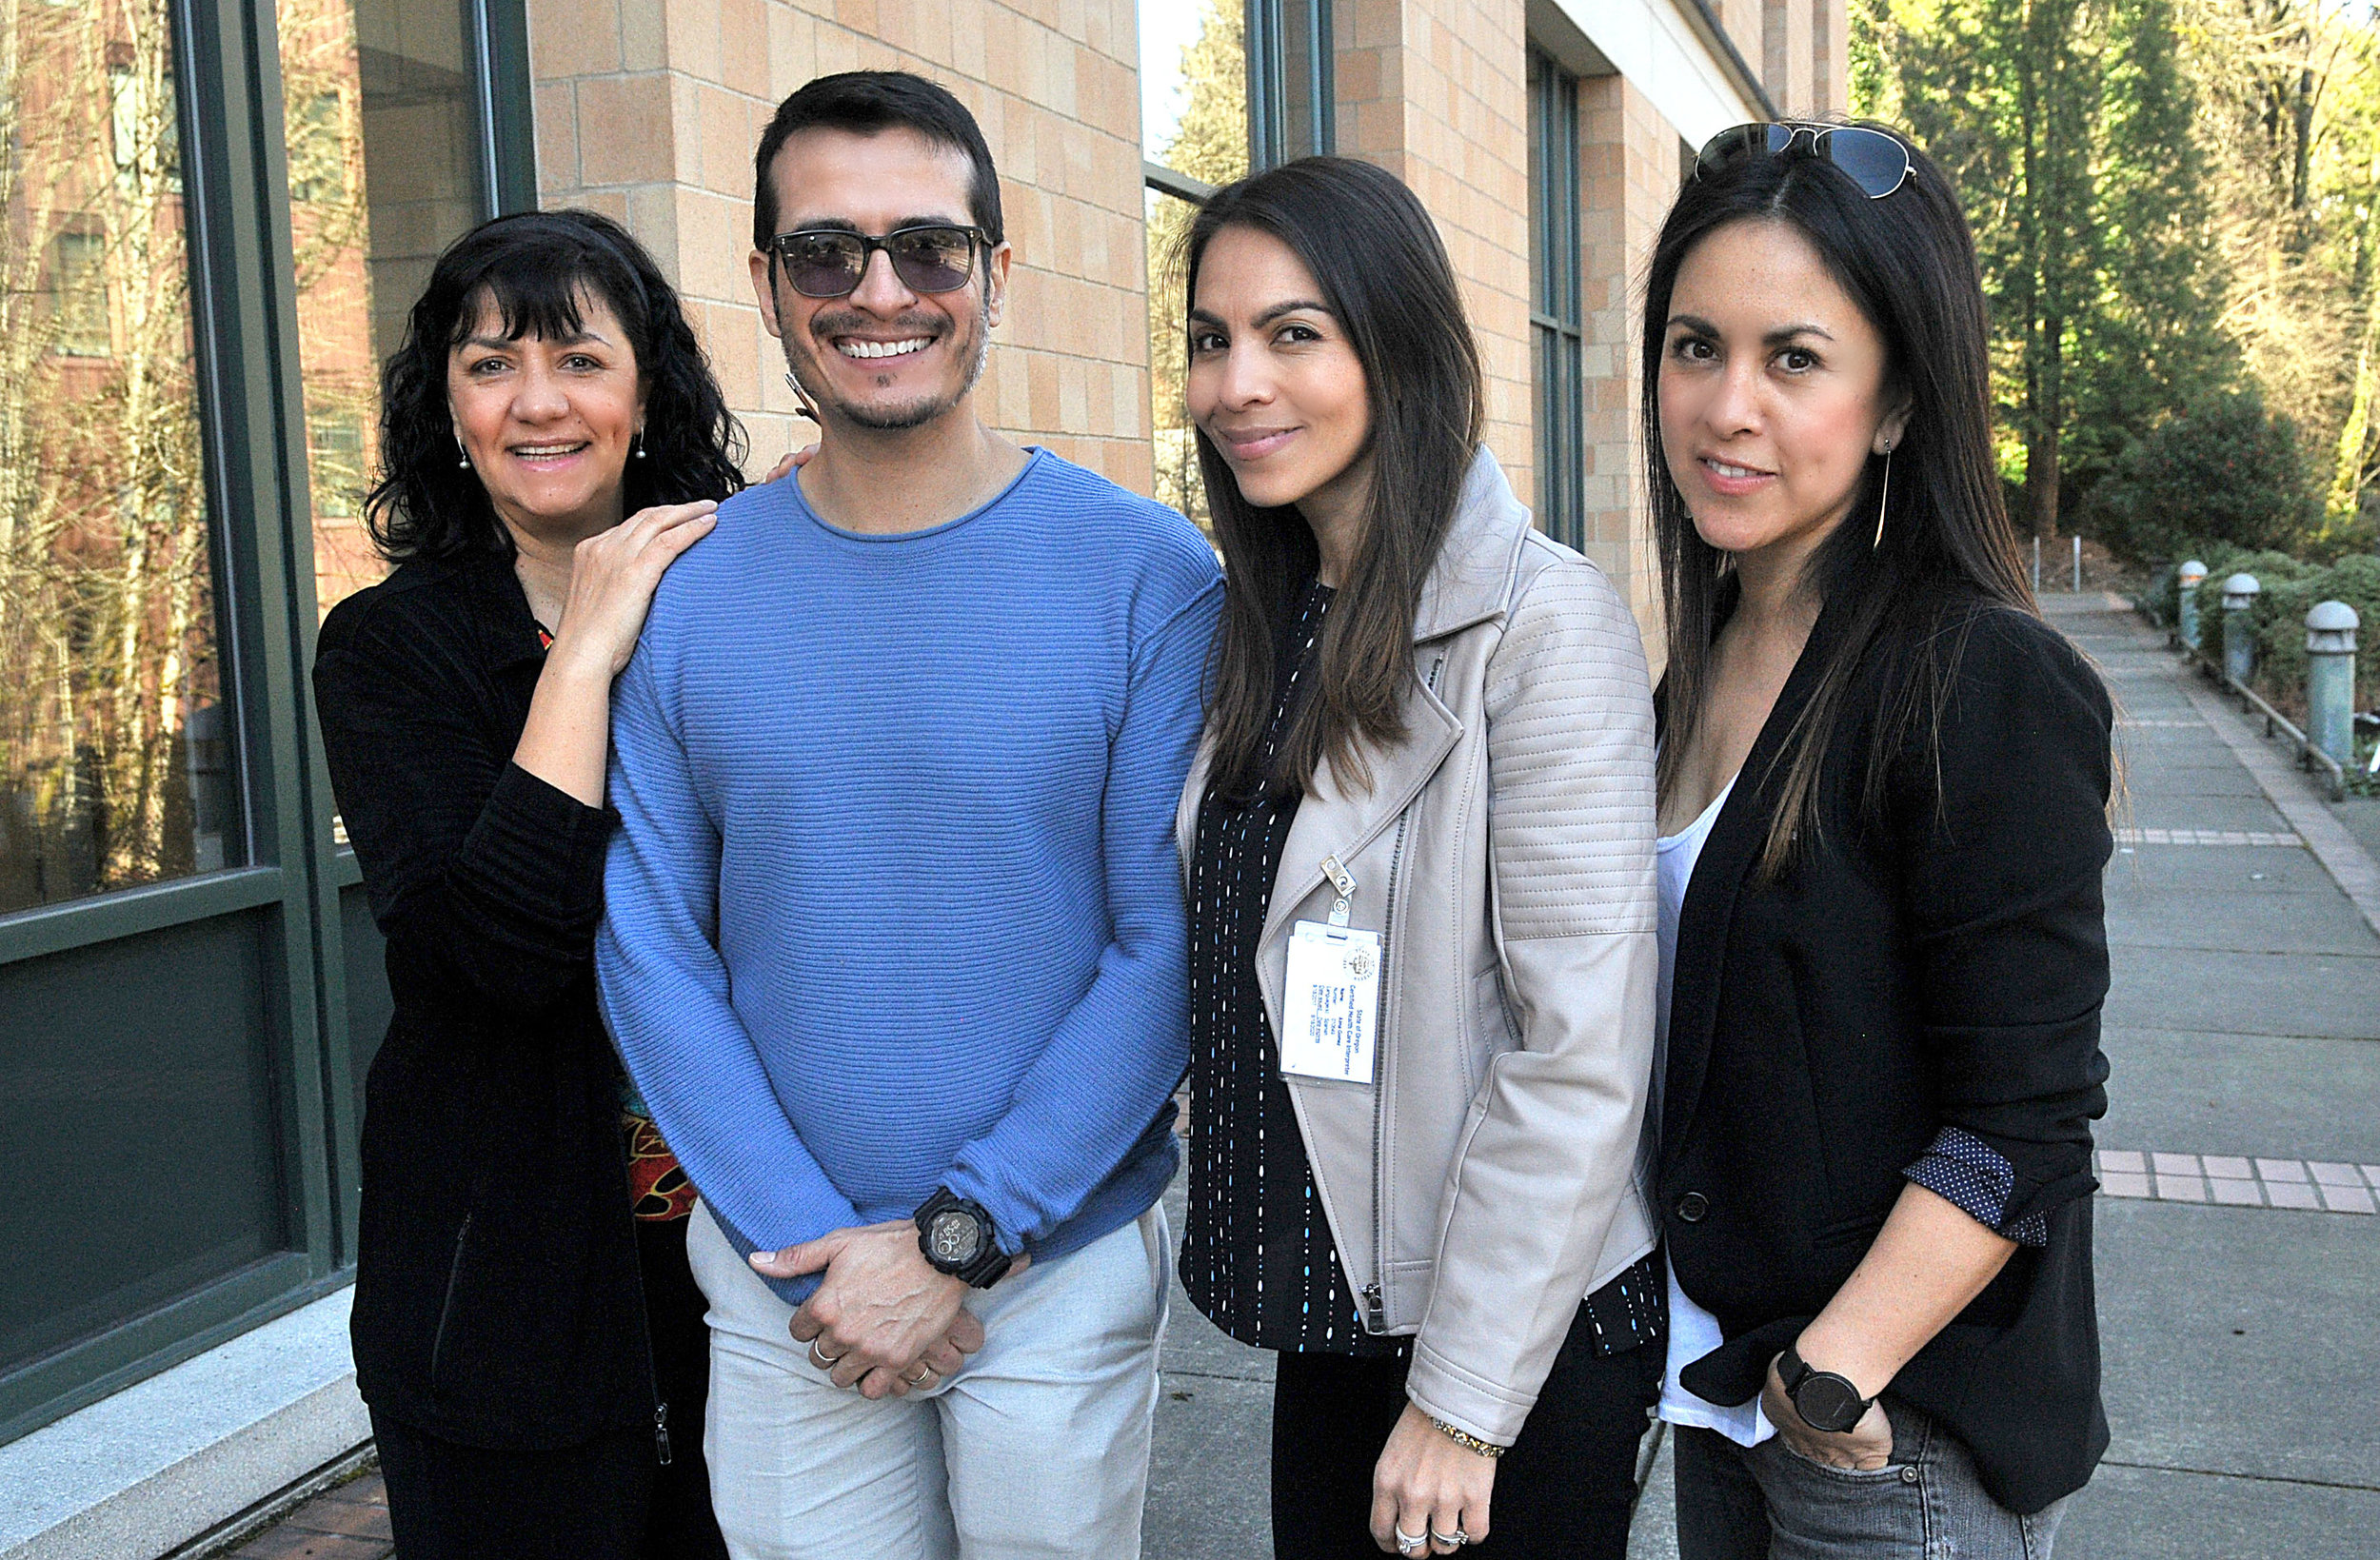 Photo: Vern Uyetake - Lake Oswego Review  From left: Executive Director Susy Molano, Training Director Guillermo Ortiz, Master Interpreter Project Manager Alma Gomez and Events and Development Manager Carola Ibanez. Not pictured is Training Director Mary Soots.